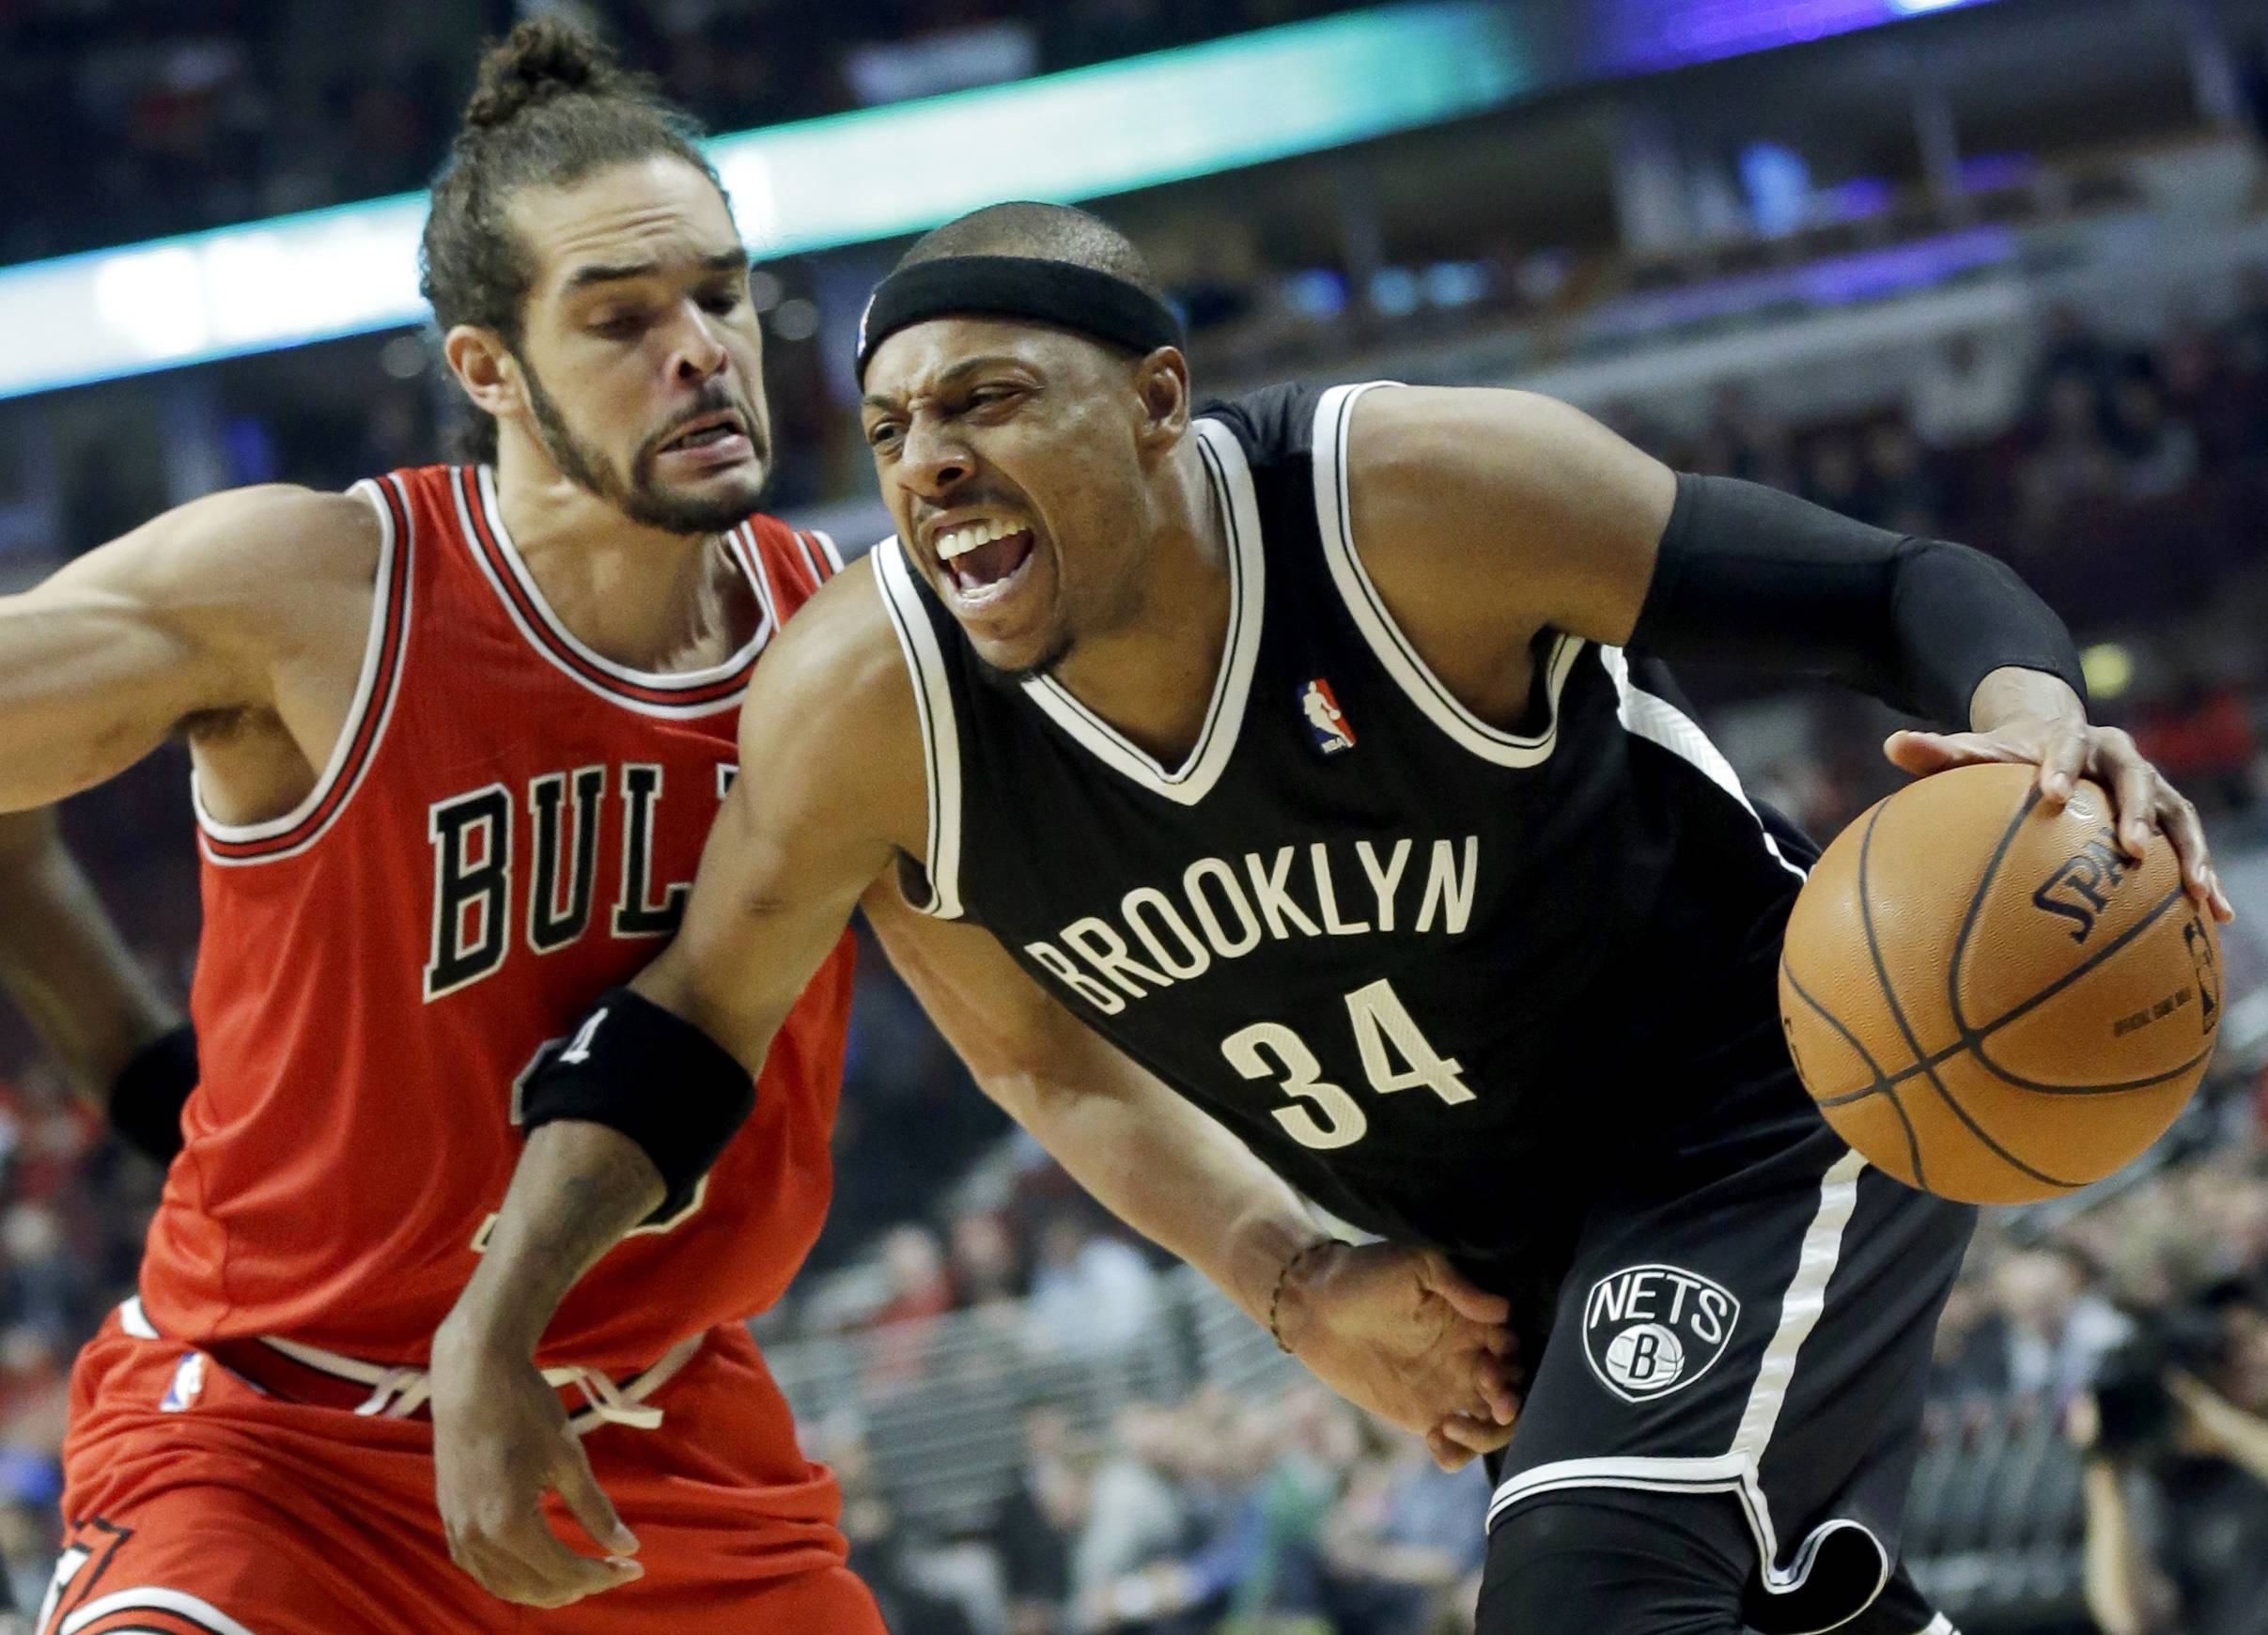 Bulls center Joakim Noah, guarding the Nets' Paul Pierce, is not likely to be in any trade for the Knicks' Carmelo Anthony, if the Bulls even have any interest in Anthony at all.